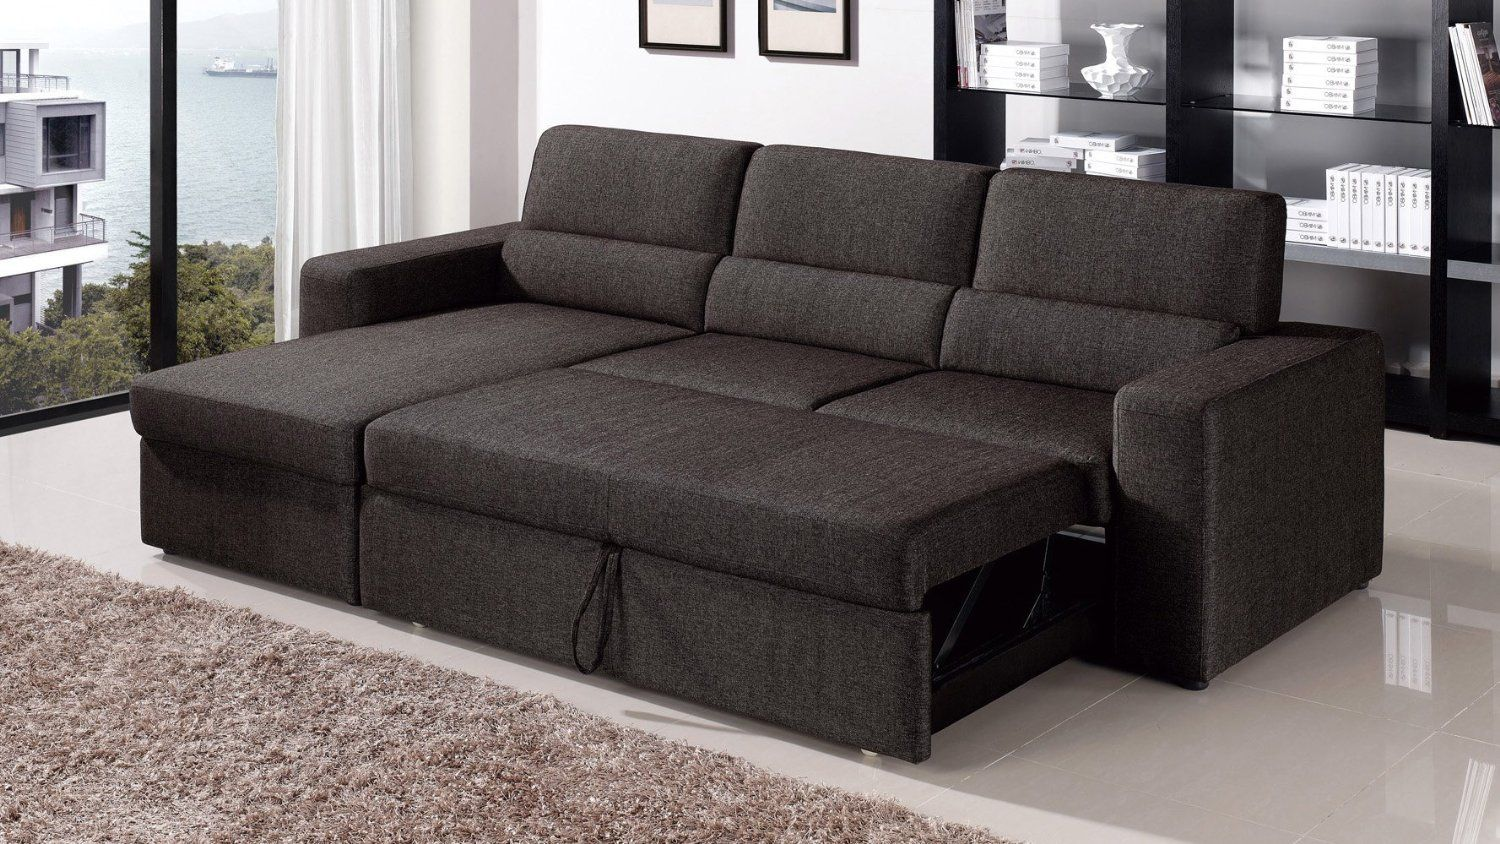 Flexsteel Sofa Best Sectional Sleeper Sofas With Storage